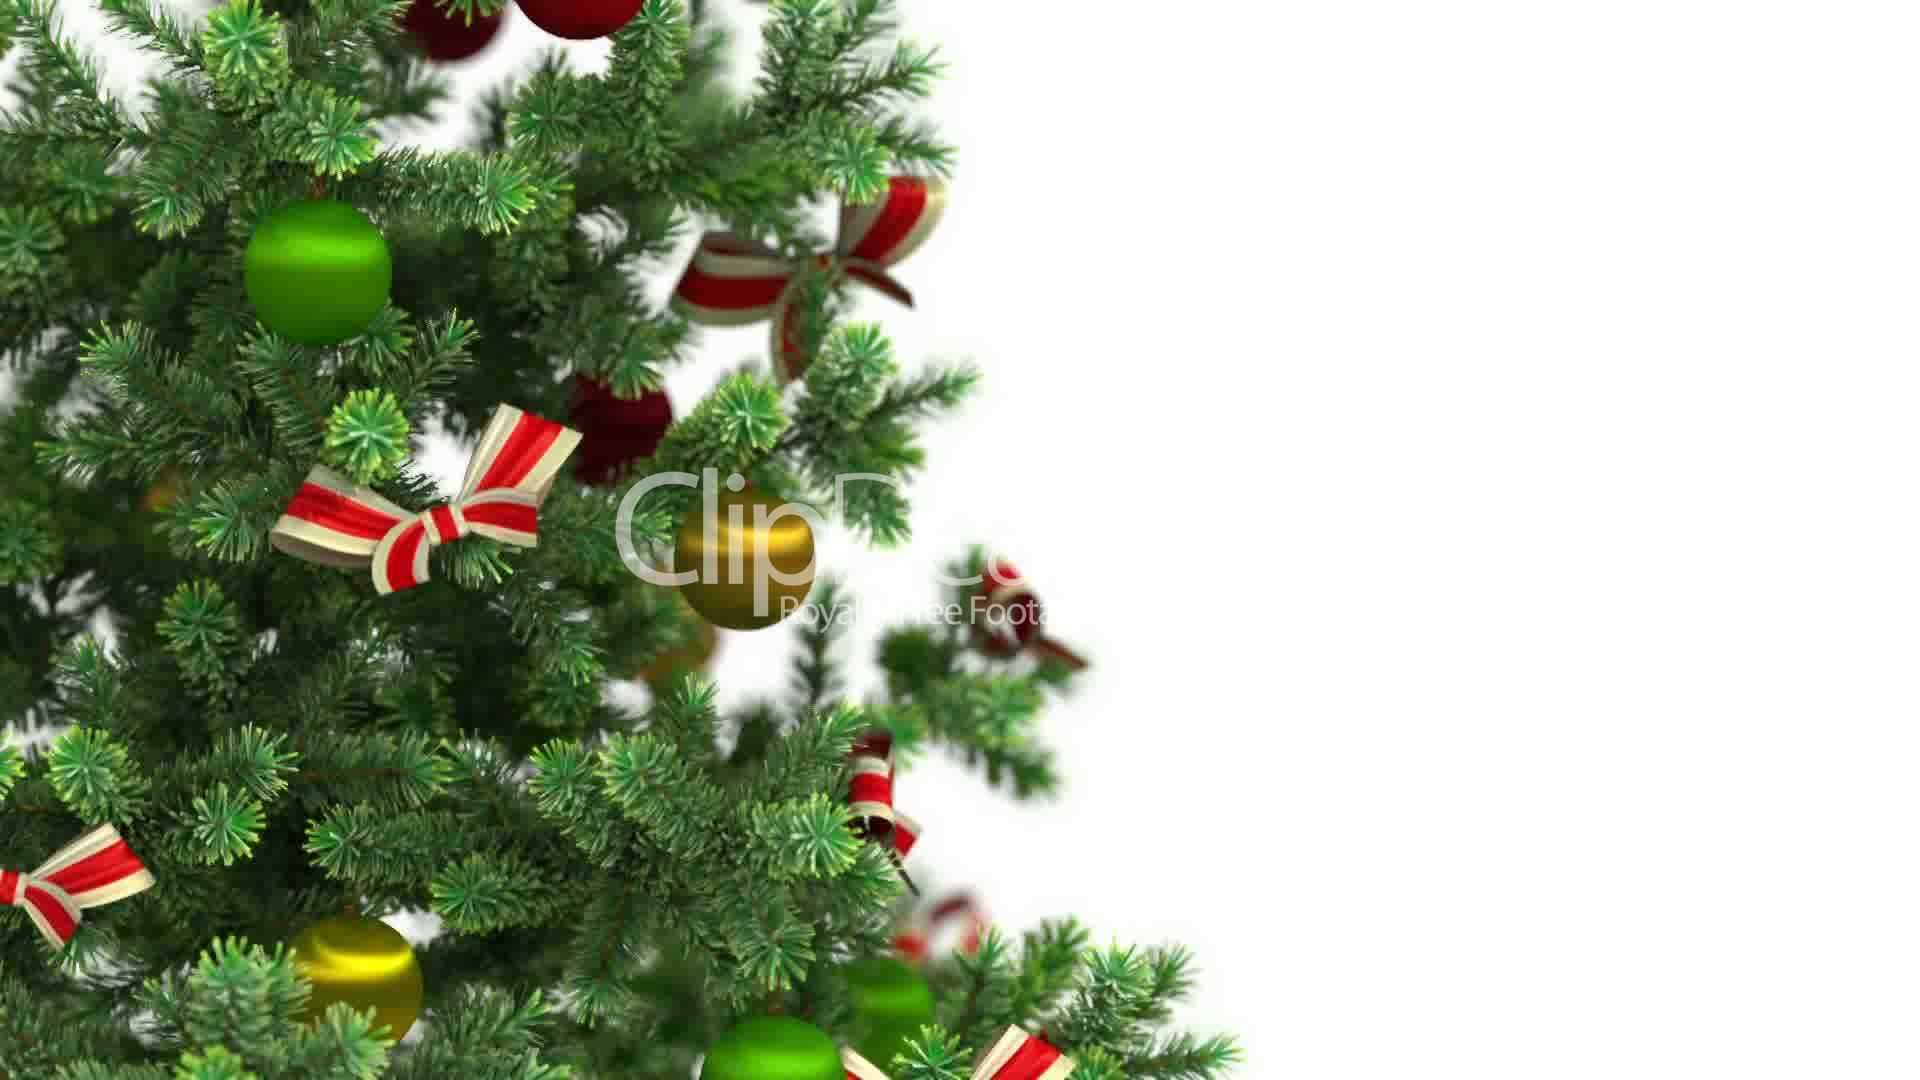 Clips Beautiful Christmas Tree Close Up On White Background